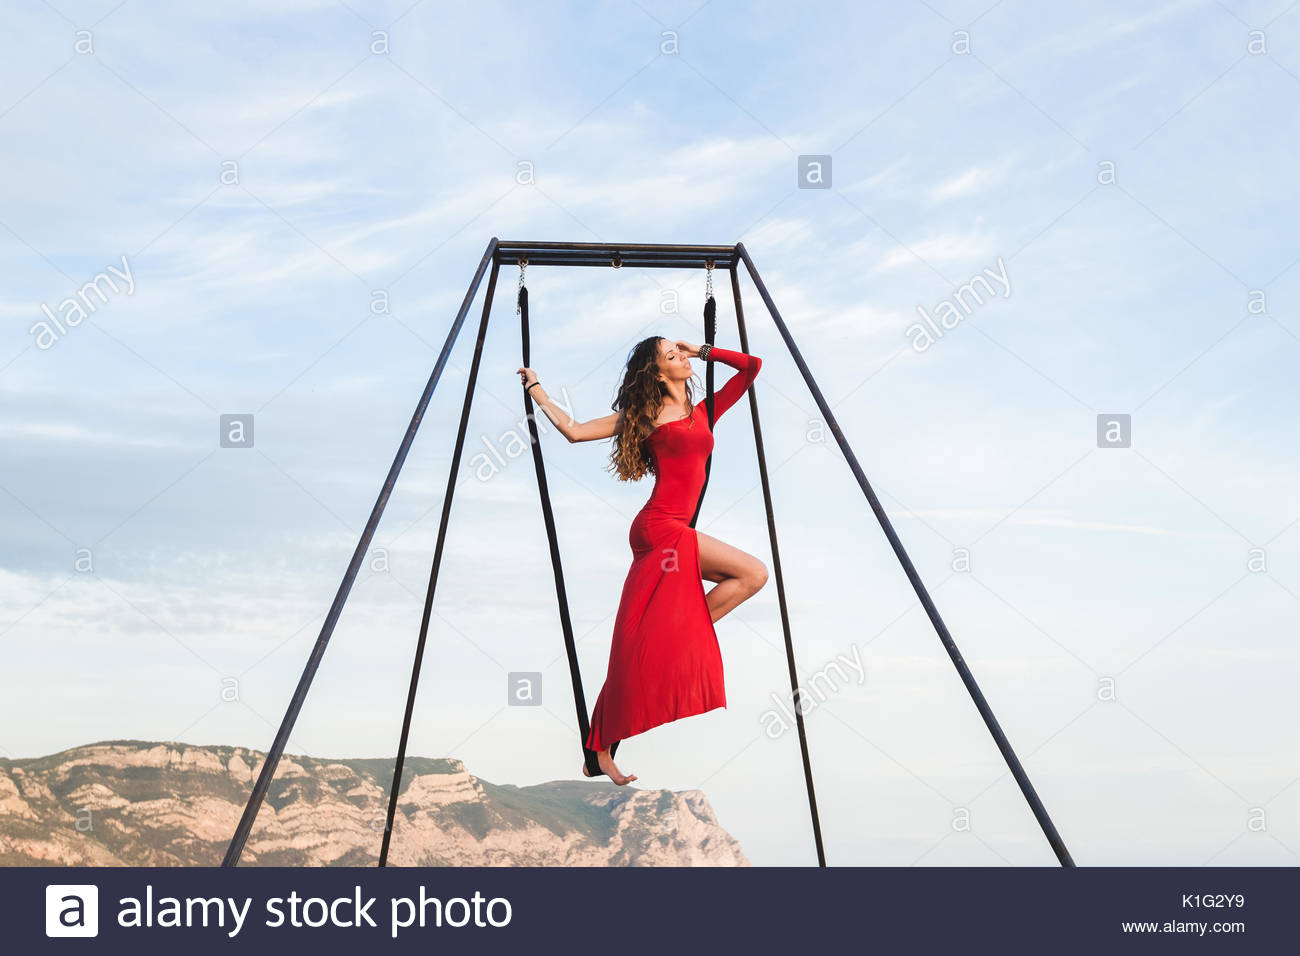 Woman in red dress practicing fly-dance poses in a hammock outdoor with a mountain view - Stock Image